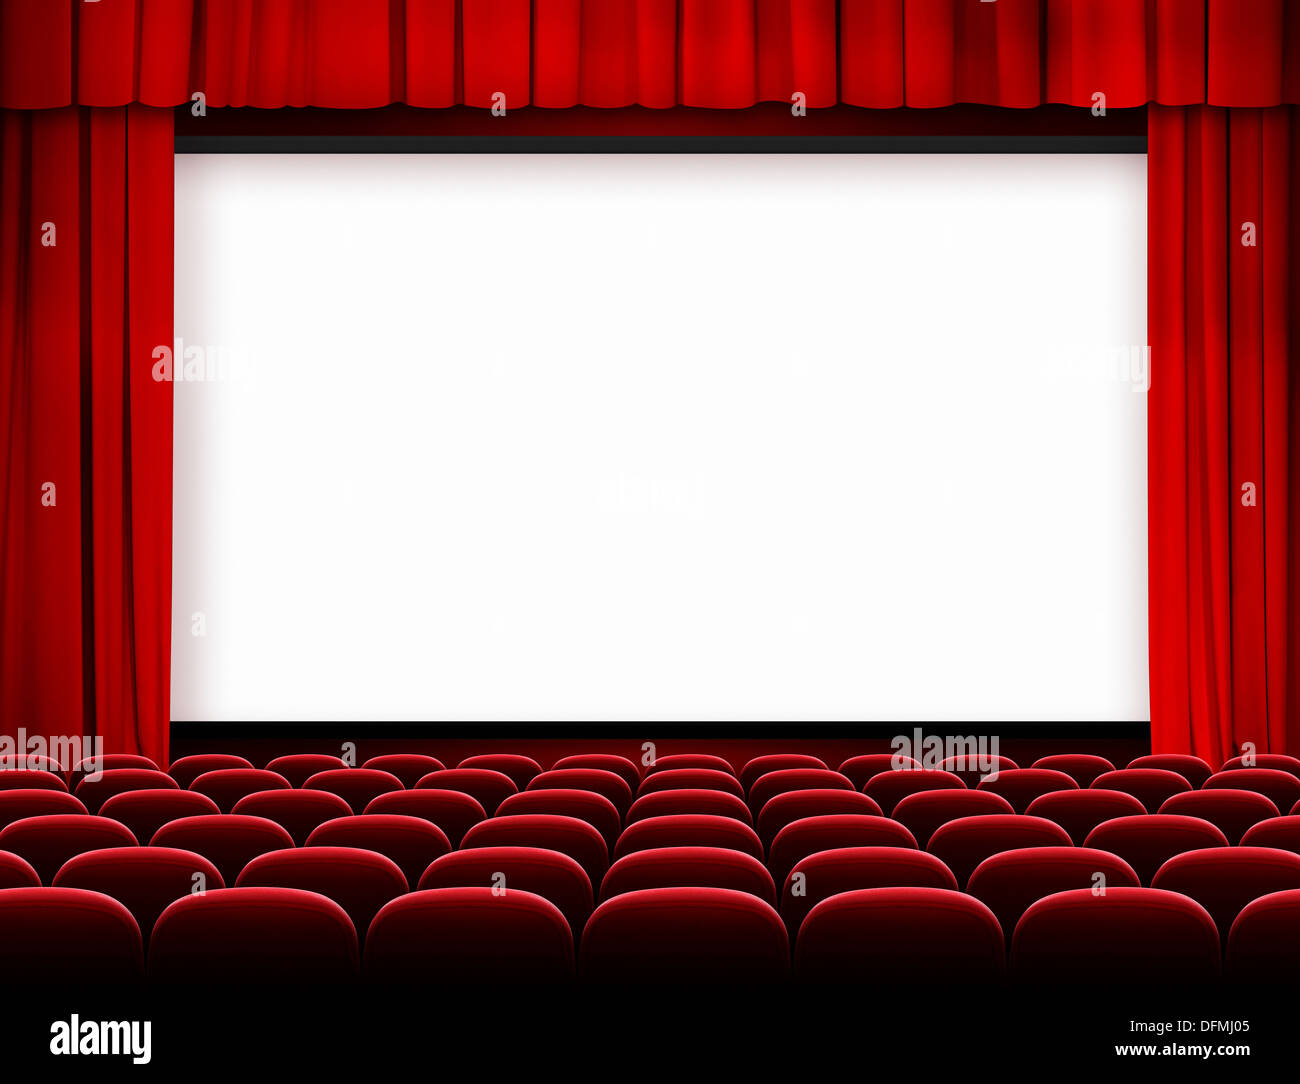 Cinema Screen With Red Curtains And Seats Stock Photo